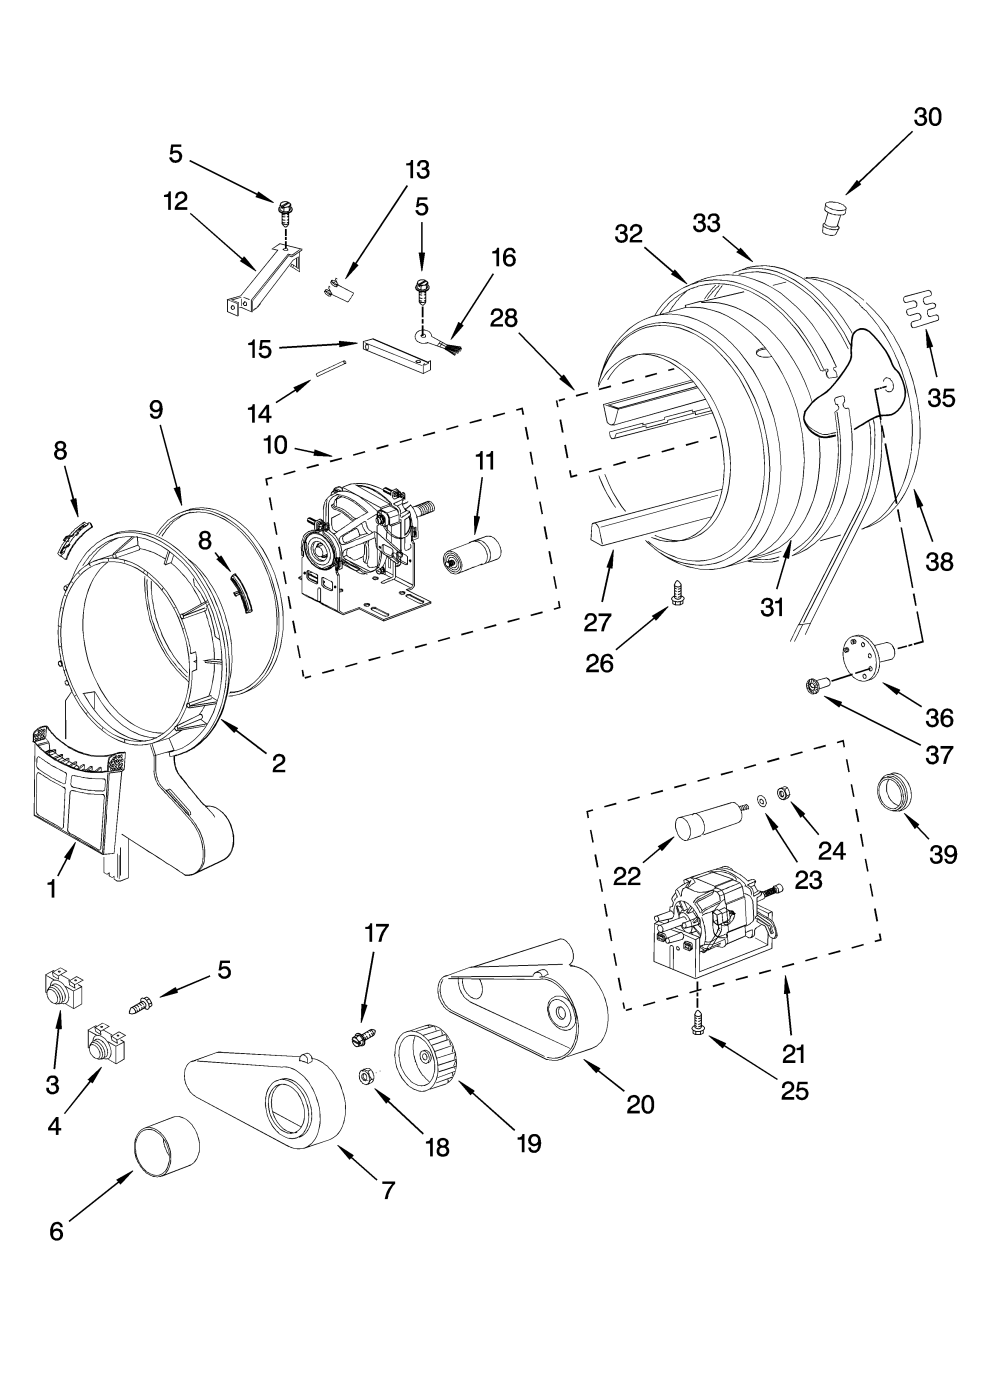 medium resolution of whirlpool wed7500vw0 drum and motor parts optional parts not included diagram